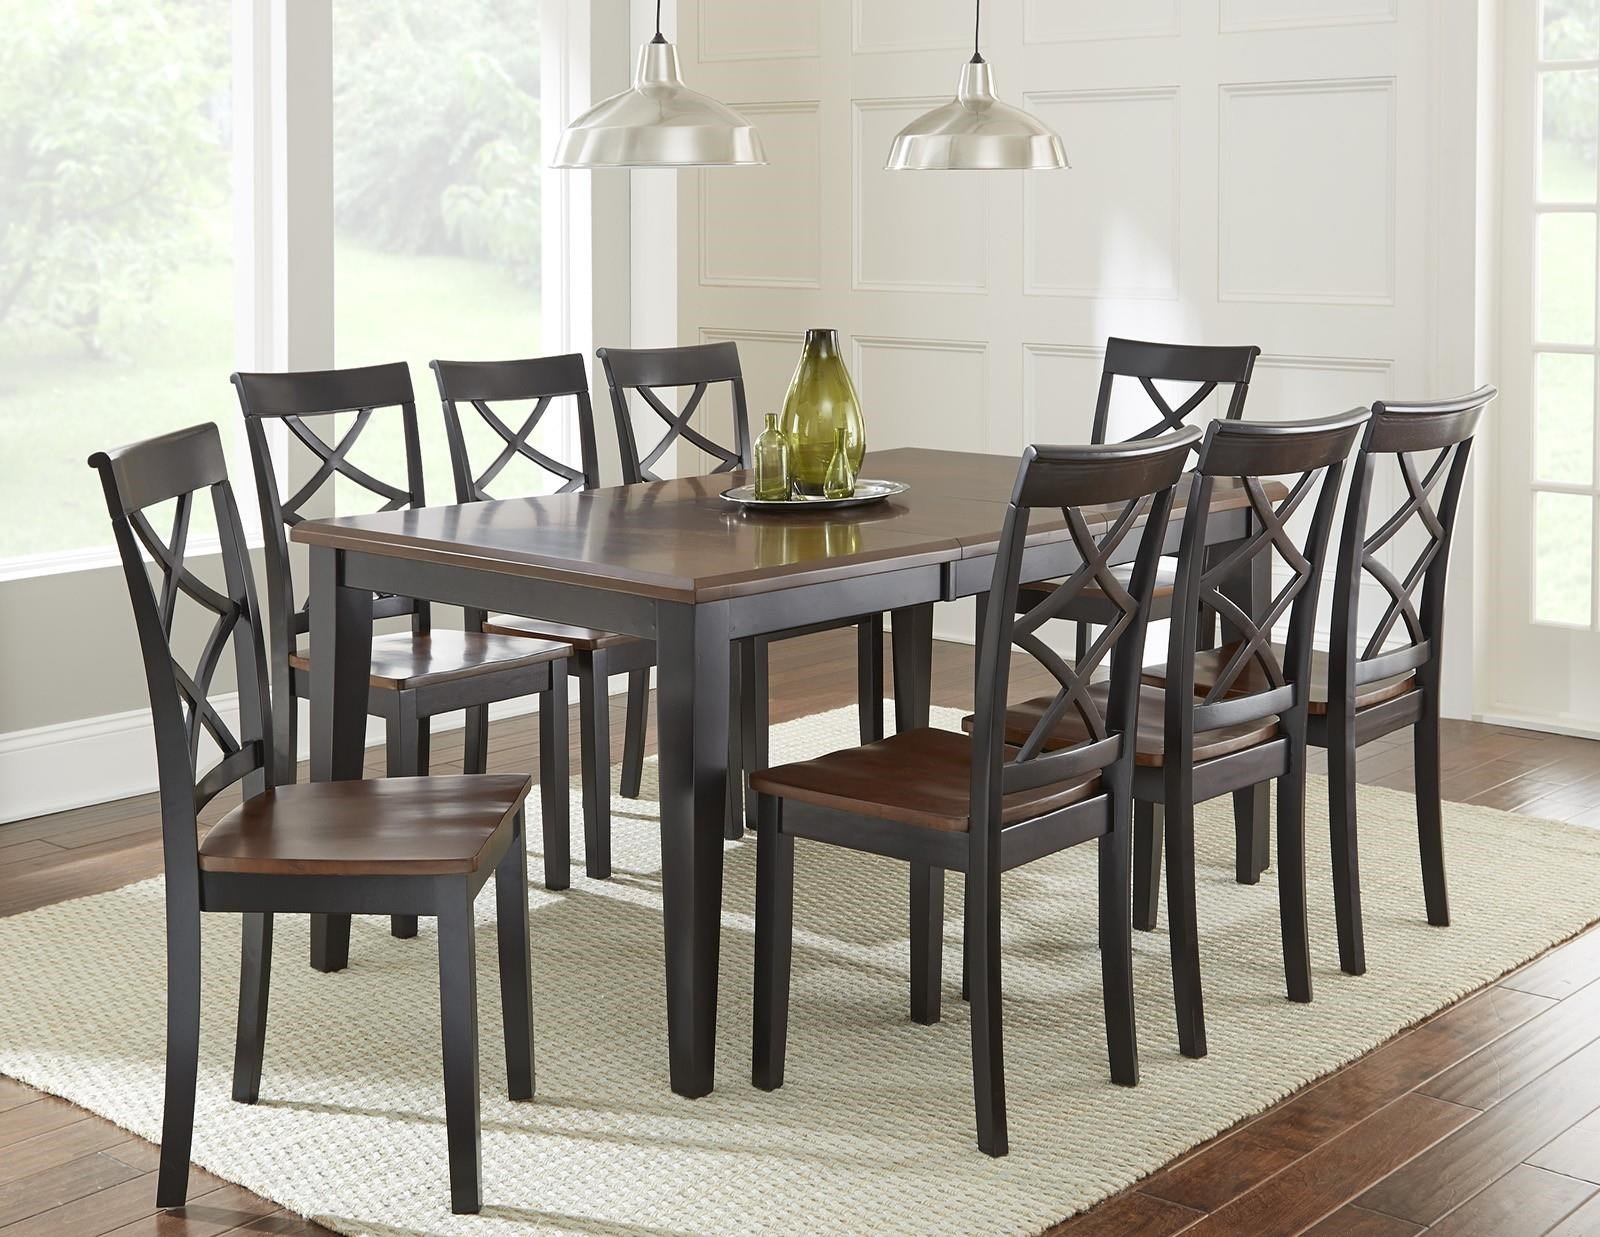 Prime Rani 9 Piece Dining Set With Two Tone Brown/Black Top